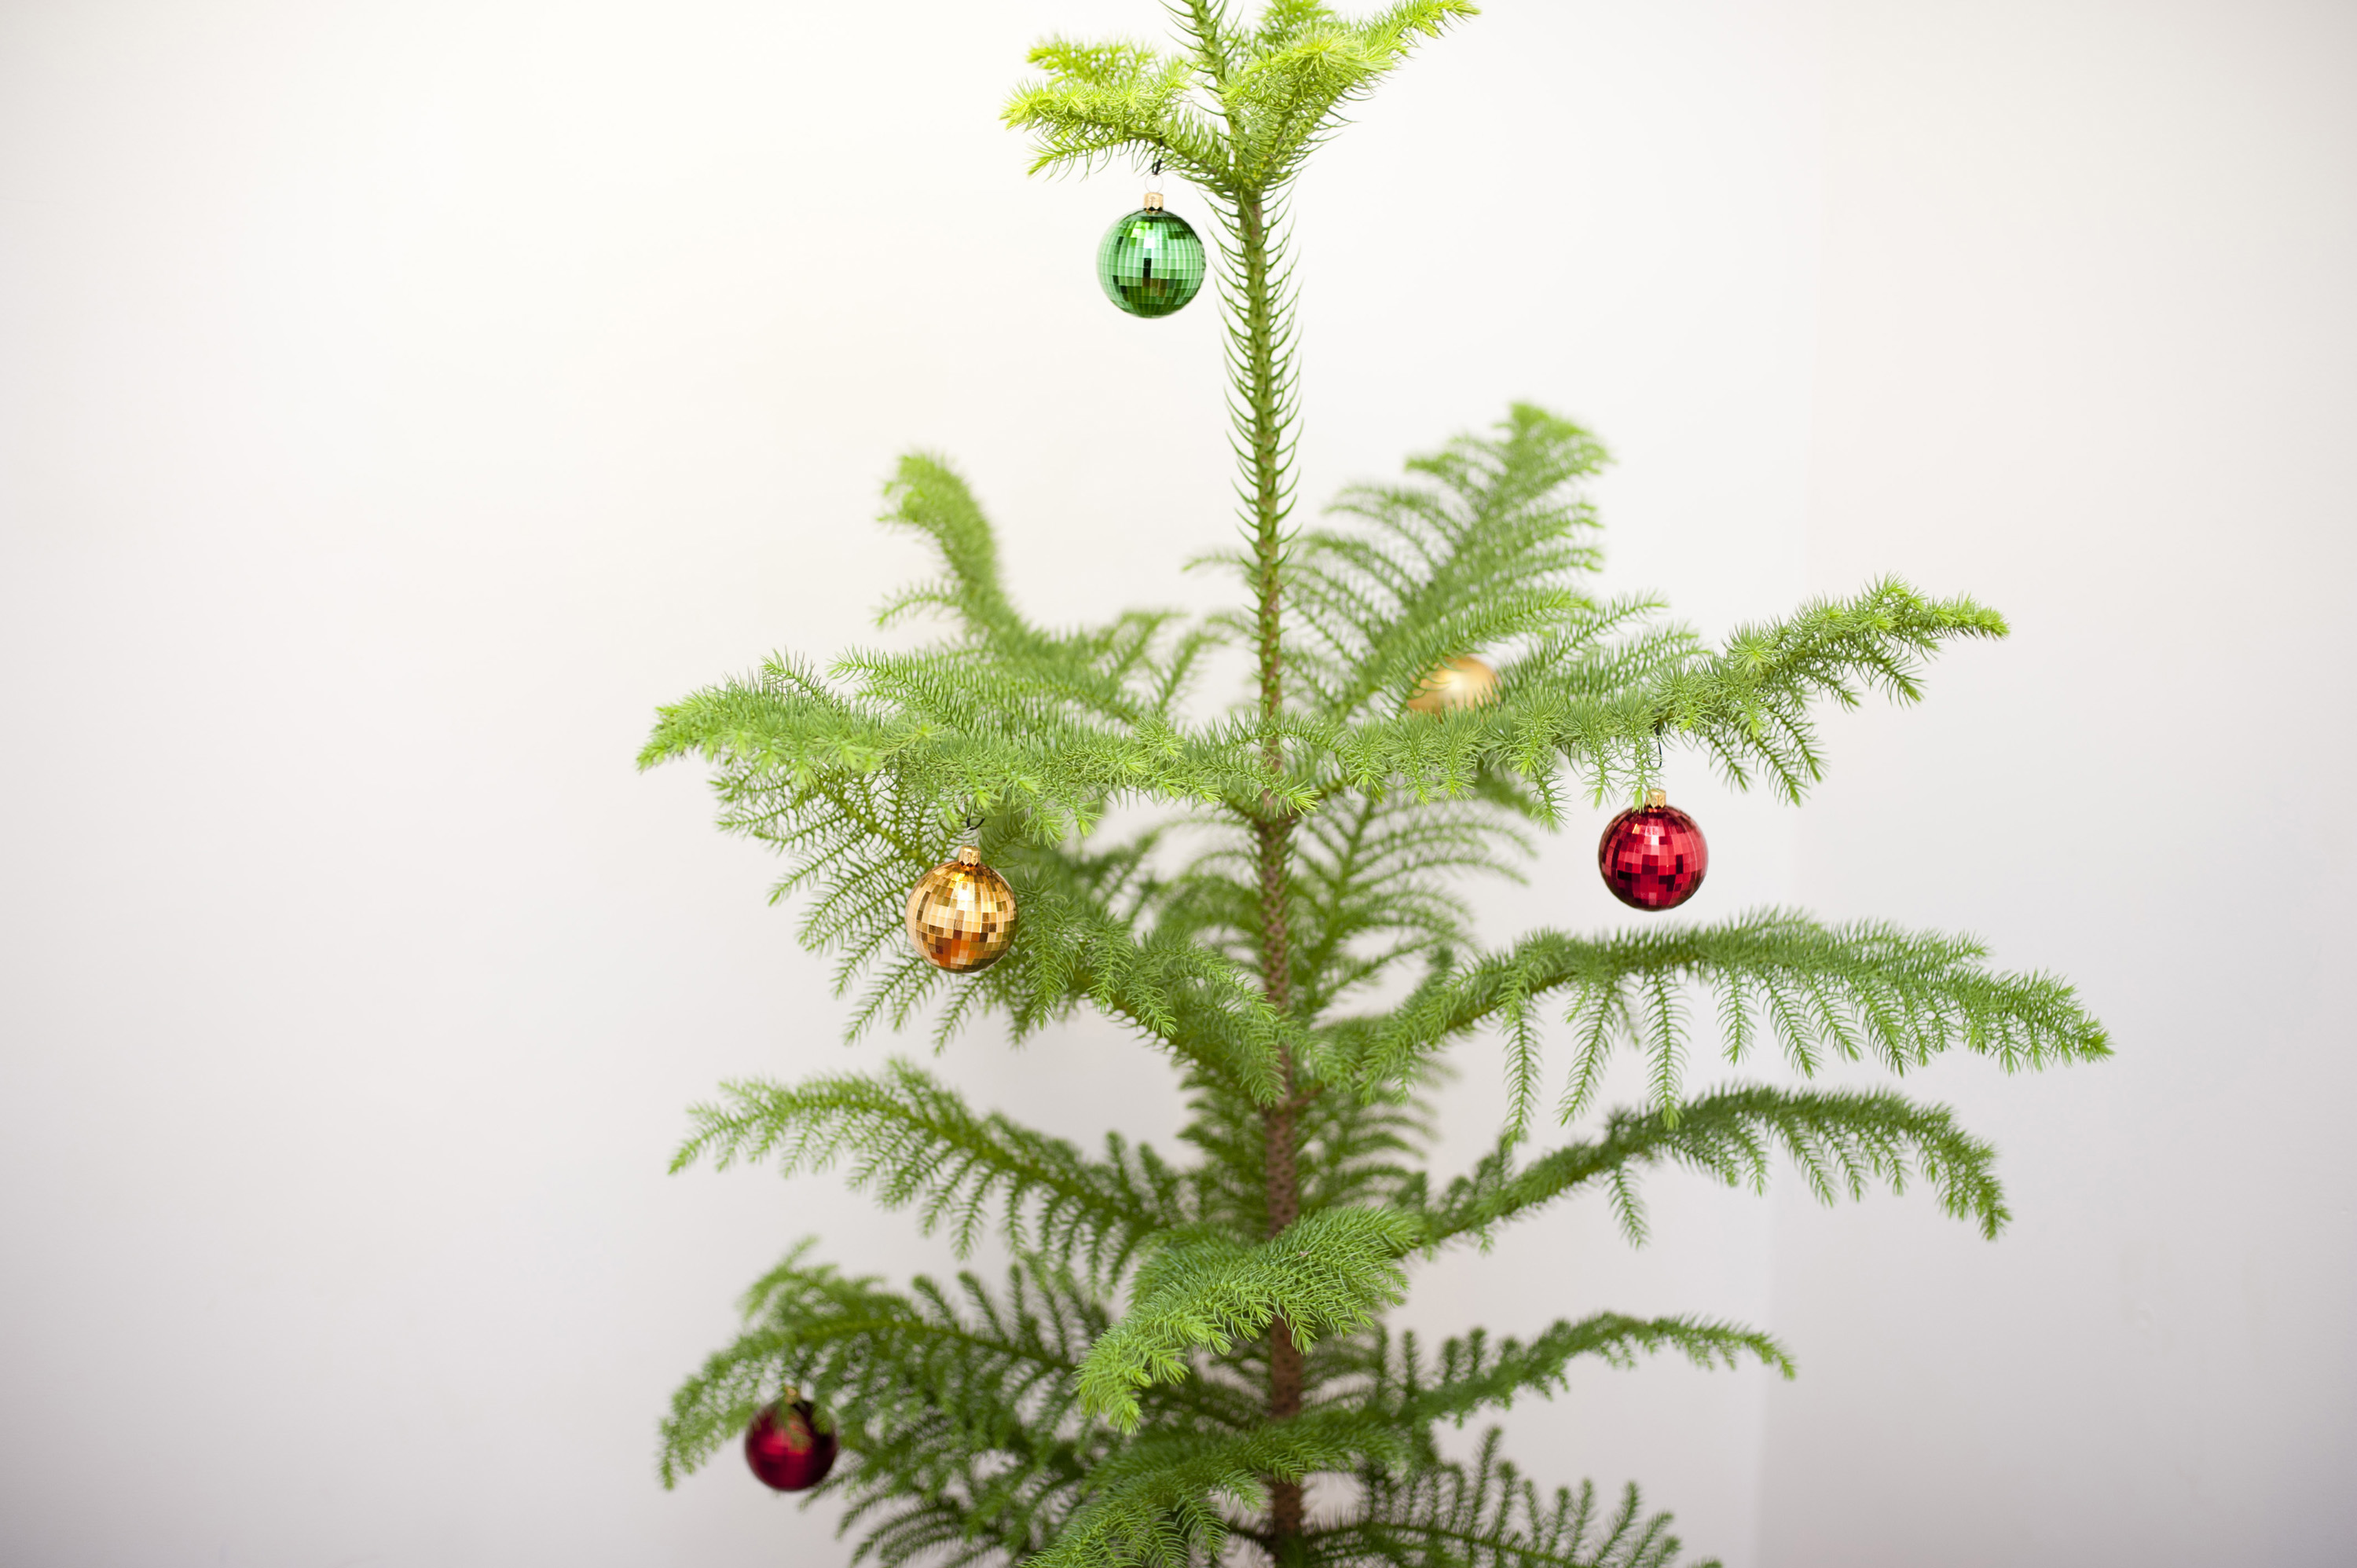 Simple Christmas decorations on a natural evergreen pine tree with colourful baubles hanging on the dainty branches